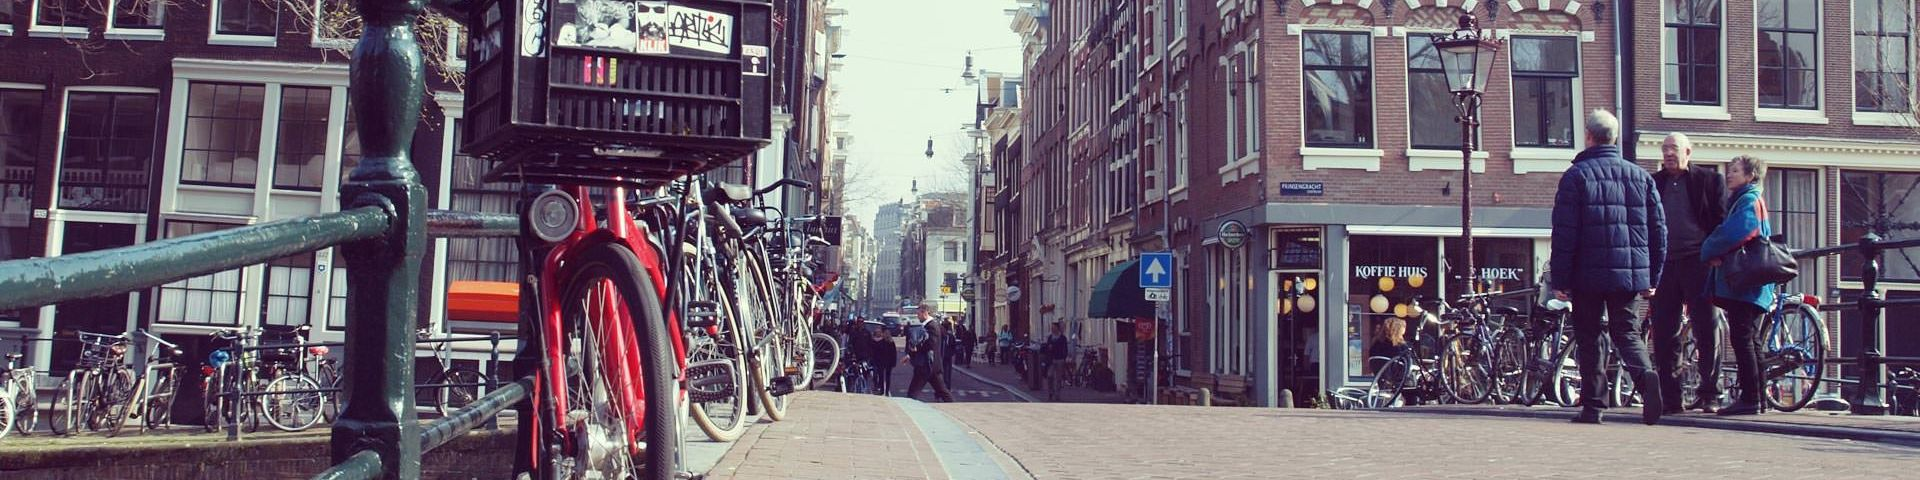 Straatjes Amsterdam The Official Site Of The 9 Little Streets Full Of Picturesque